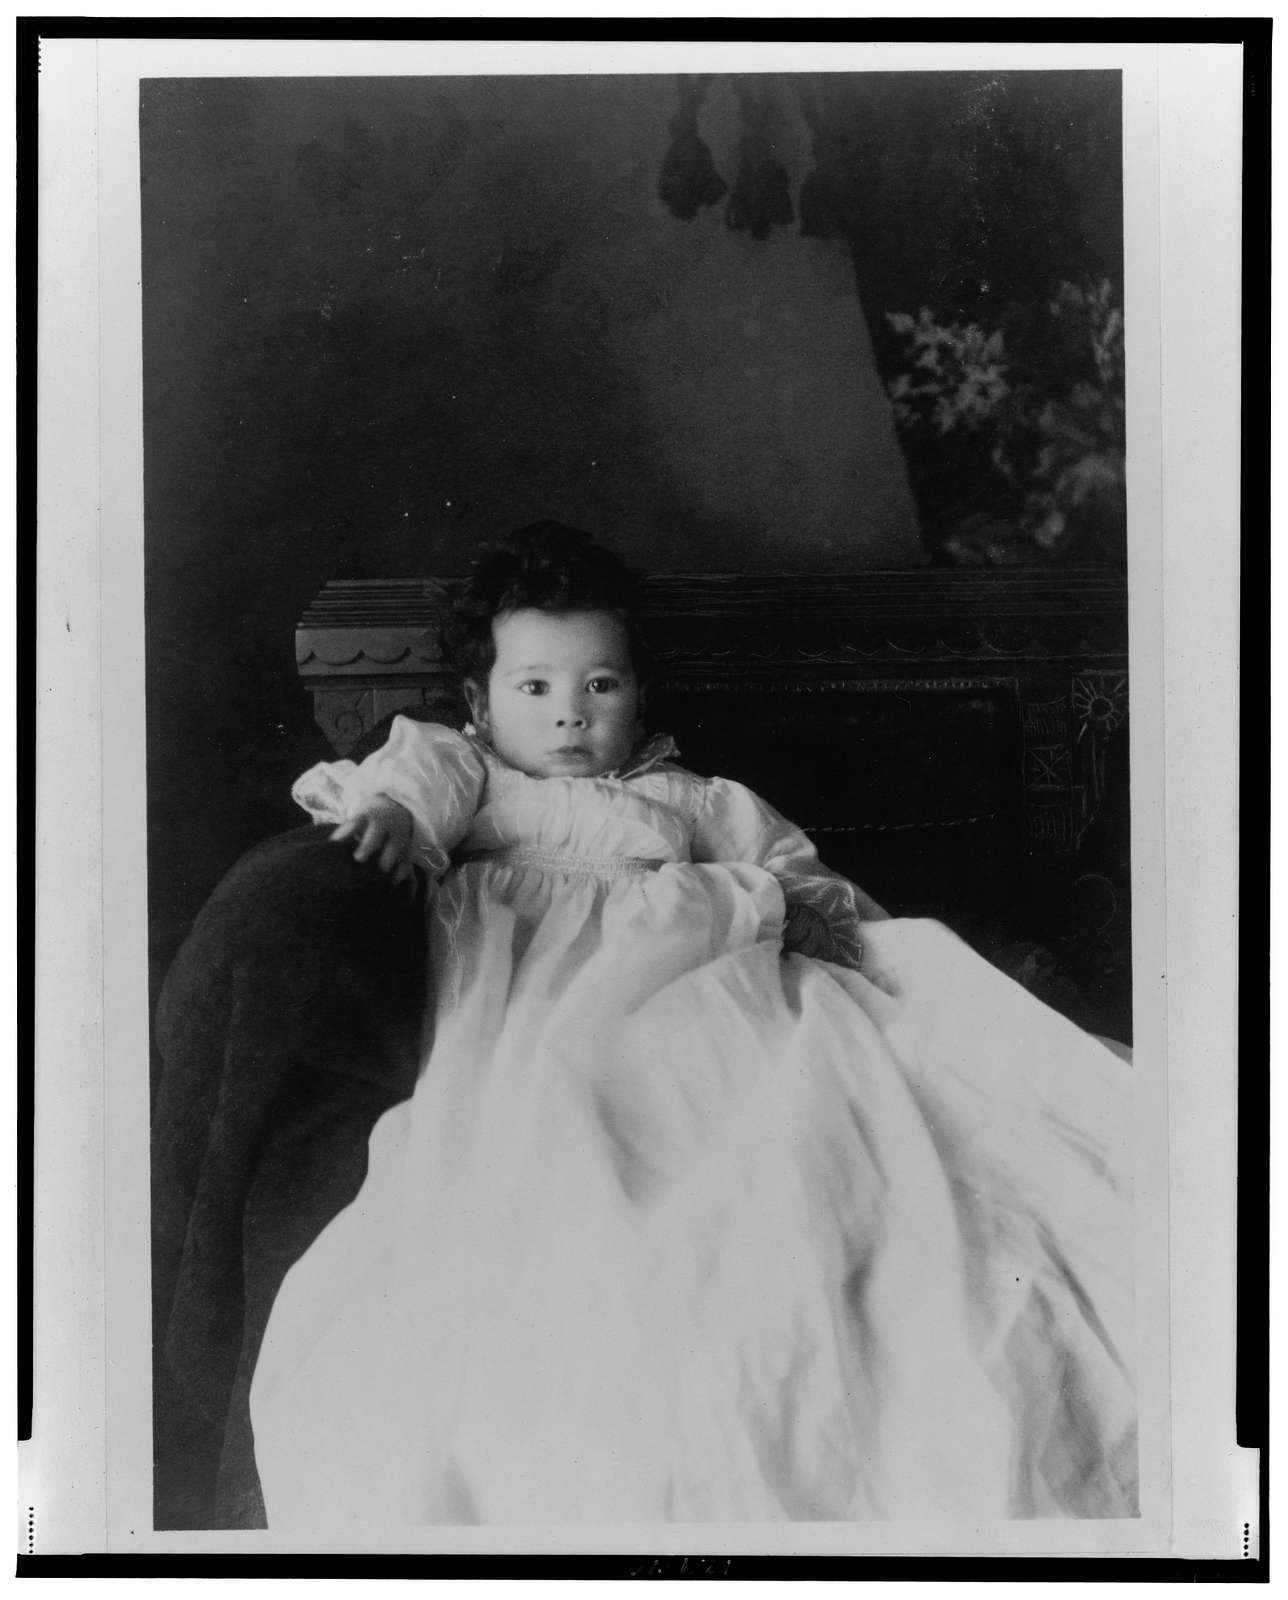 [African American infant, seated in chair, wearing christening gown, facing front]